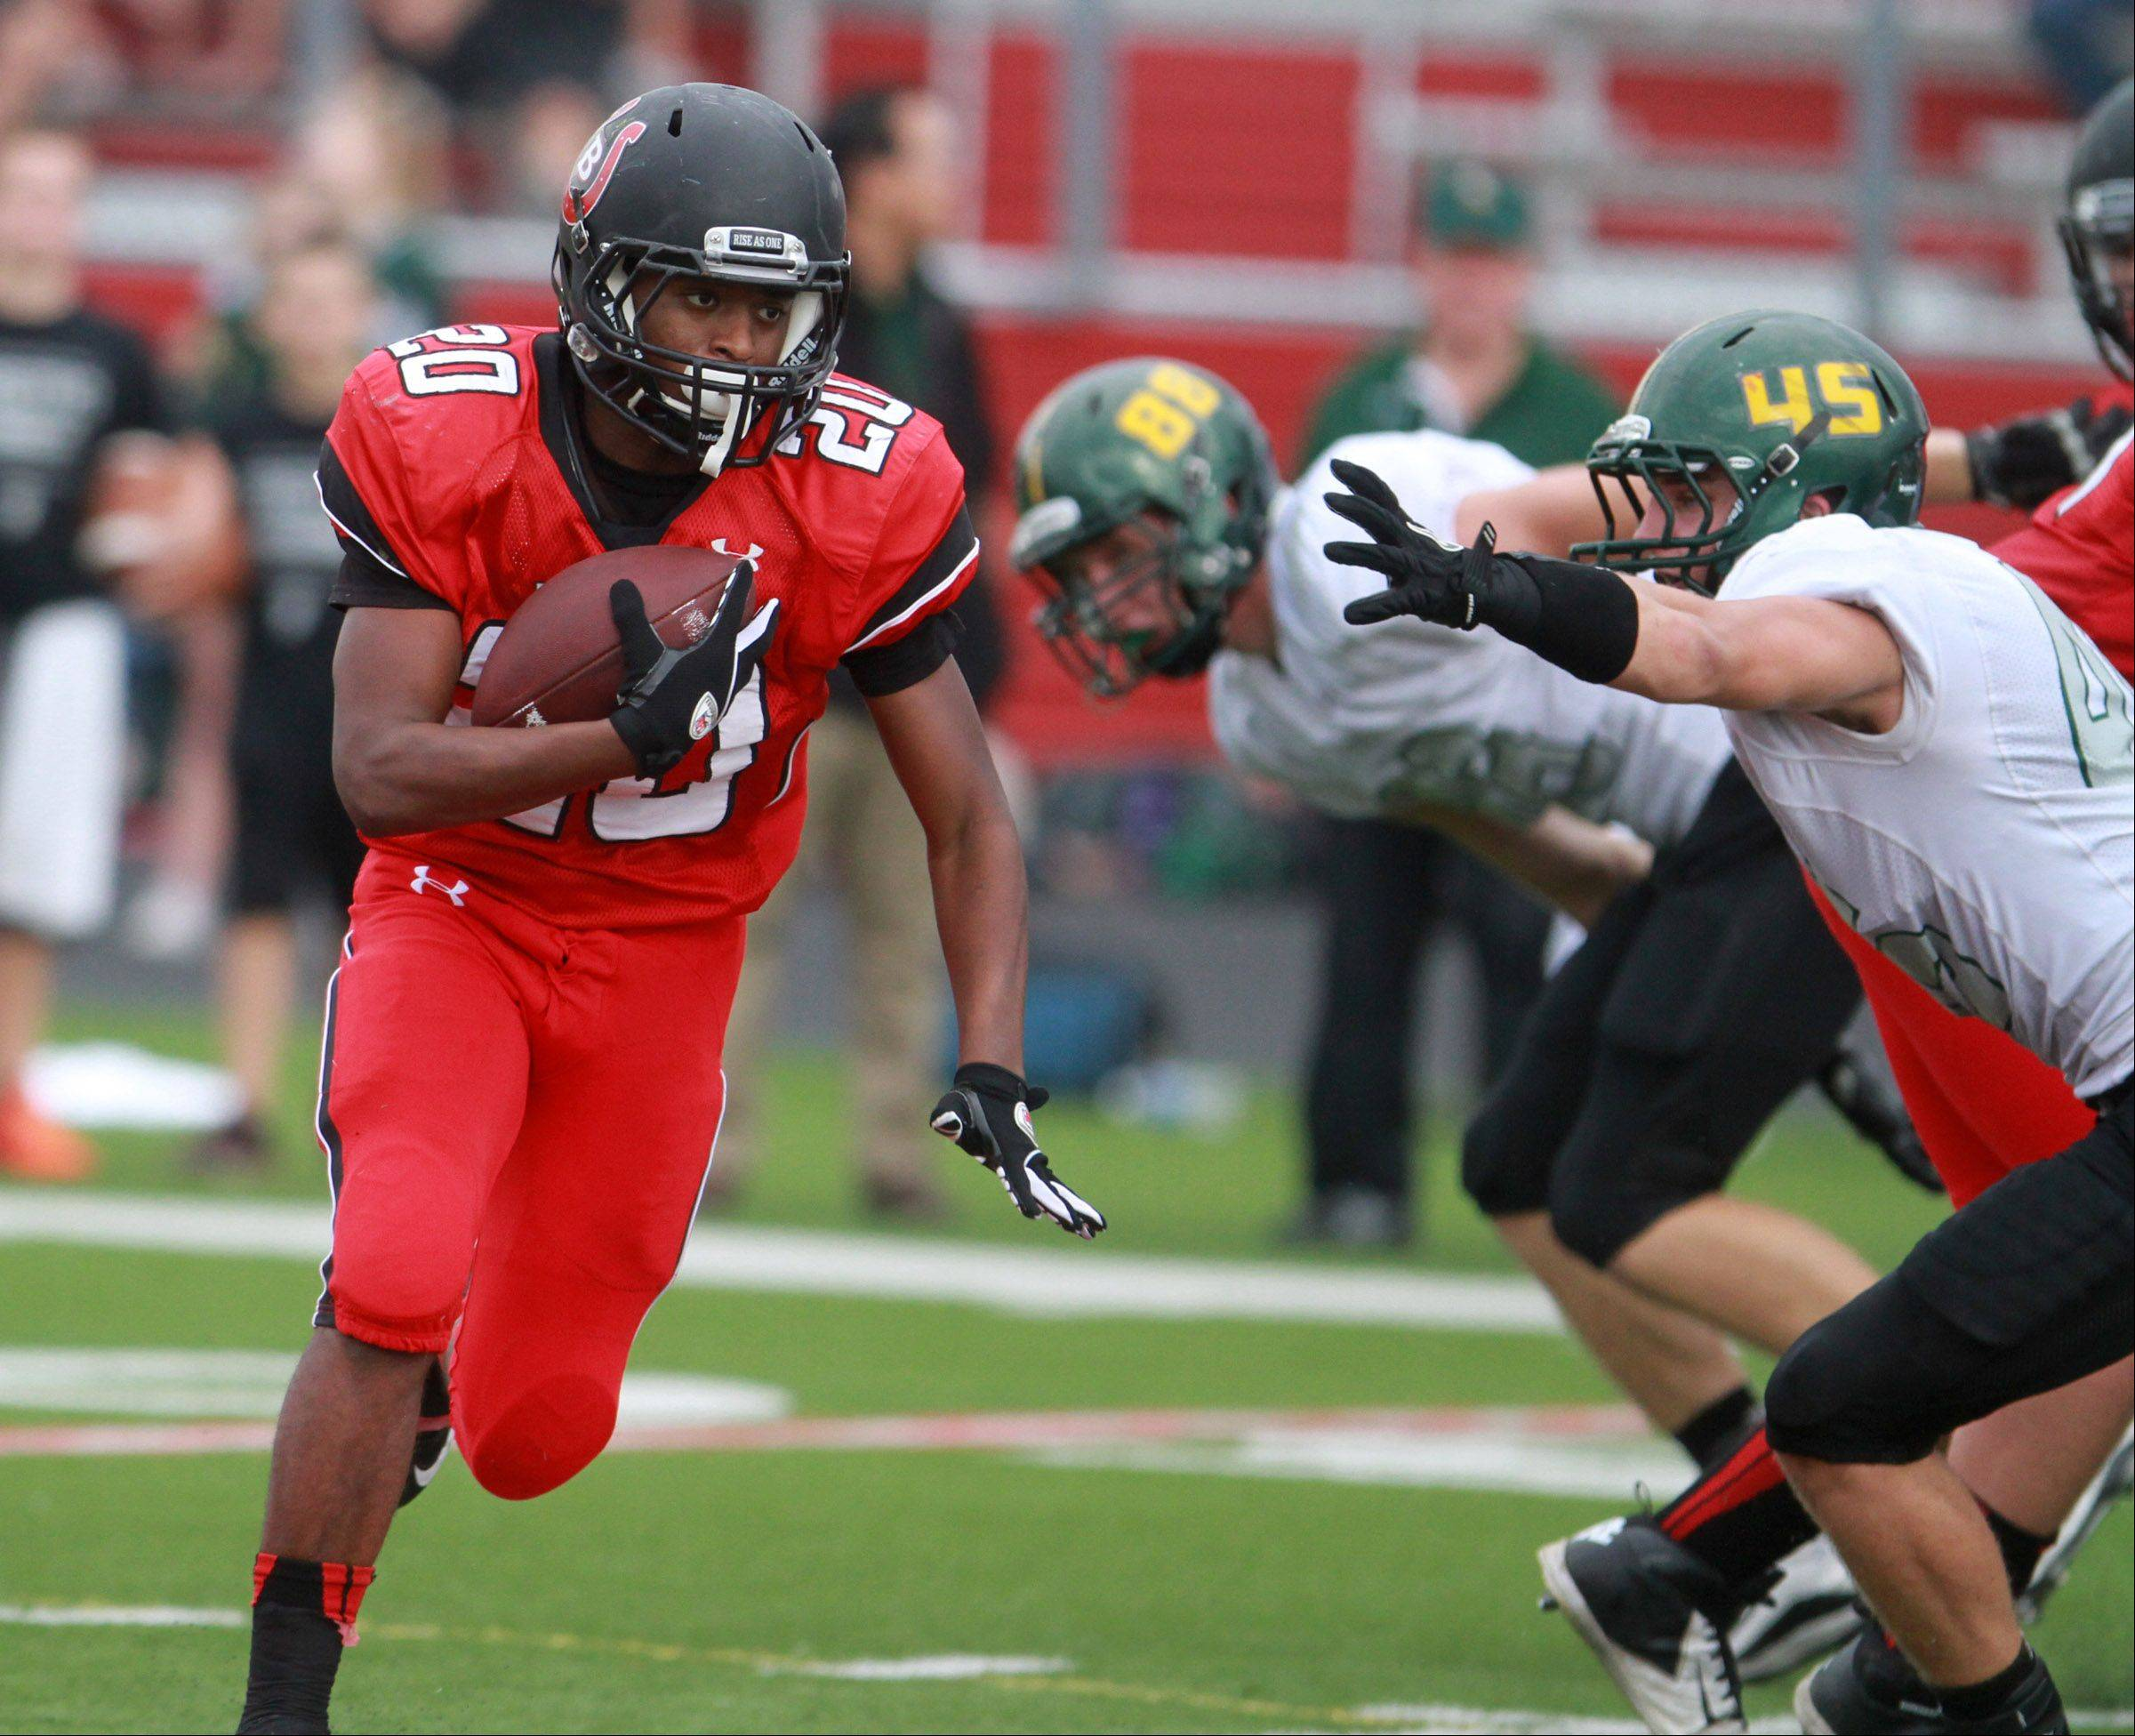 Barrington receiver Jeff Gill runs around two Fremd defenders at Barrington on Saturday.